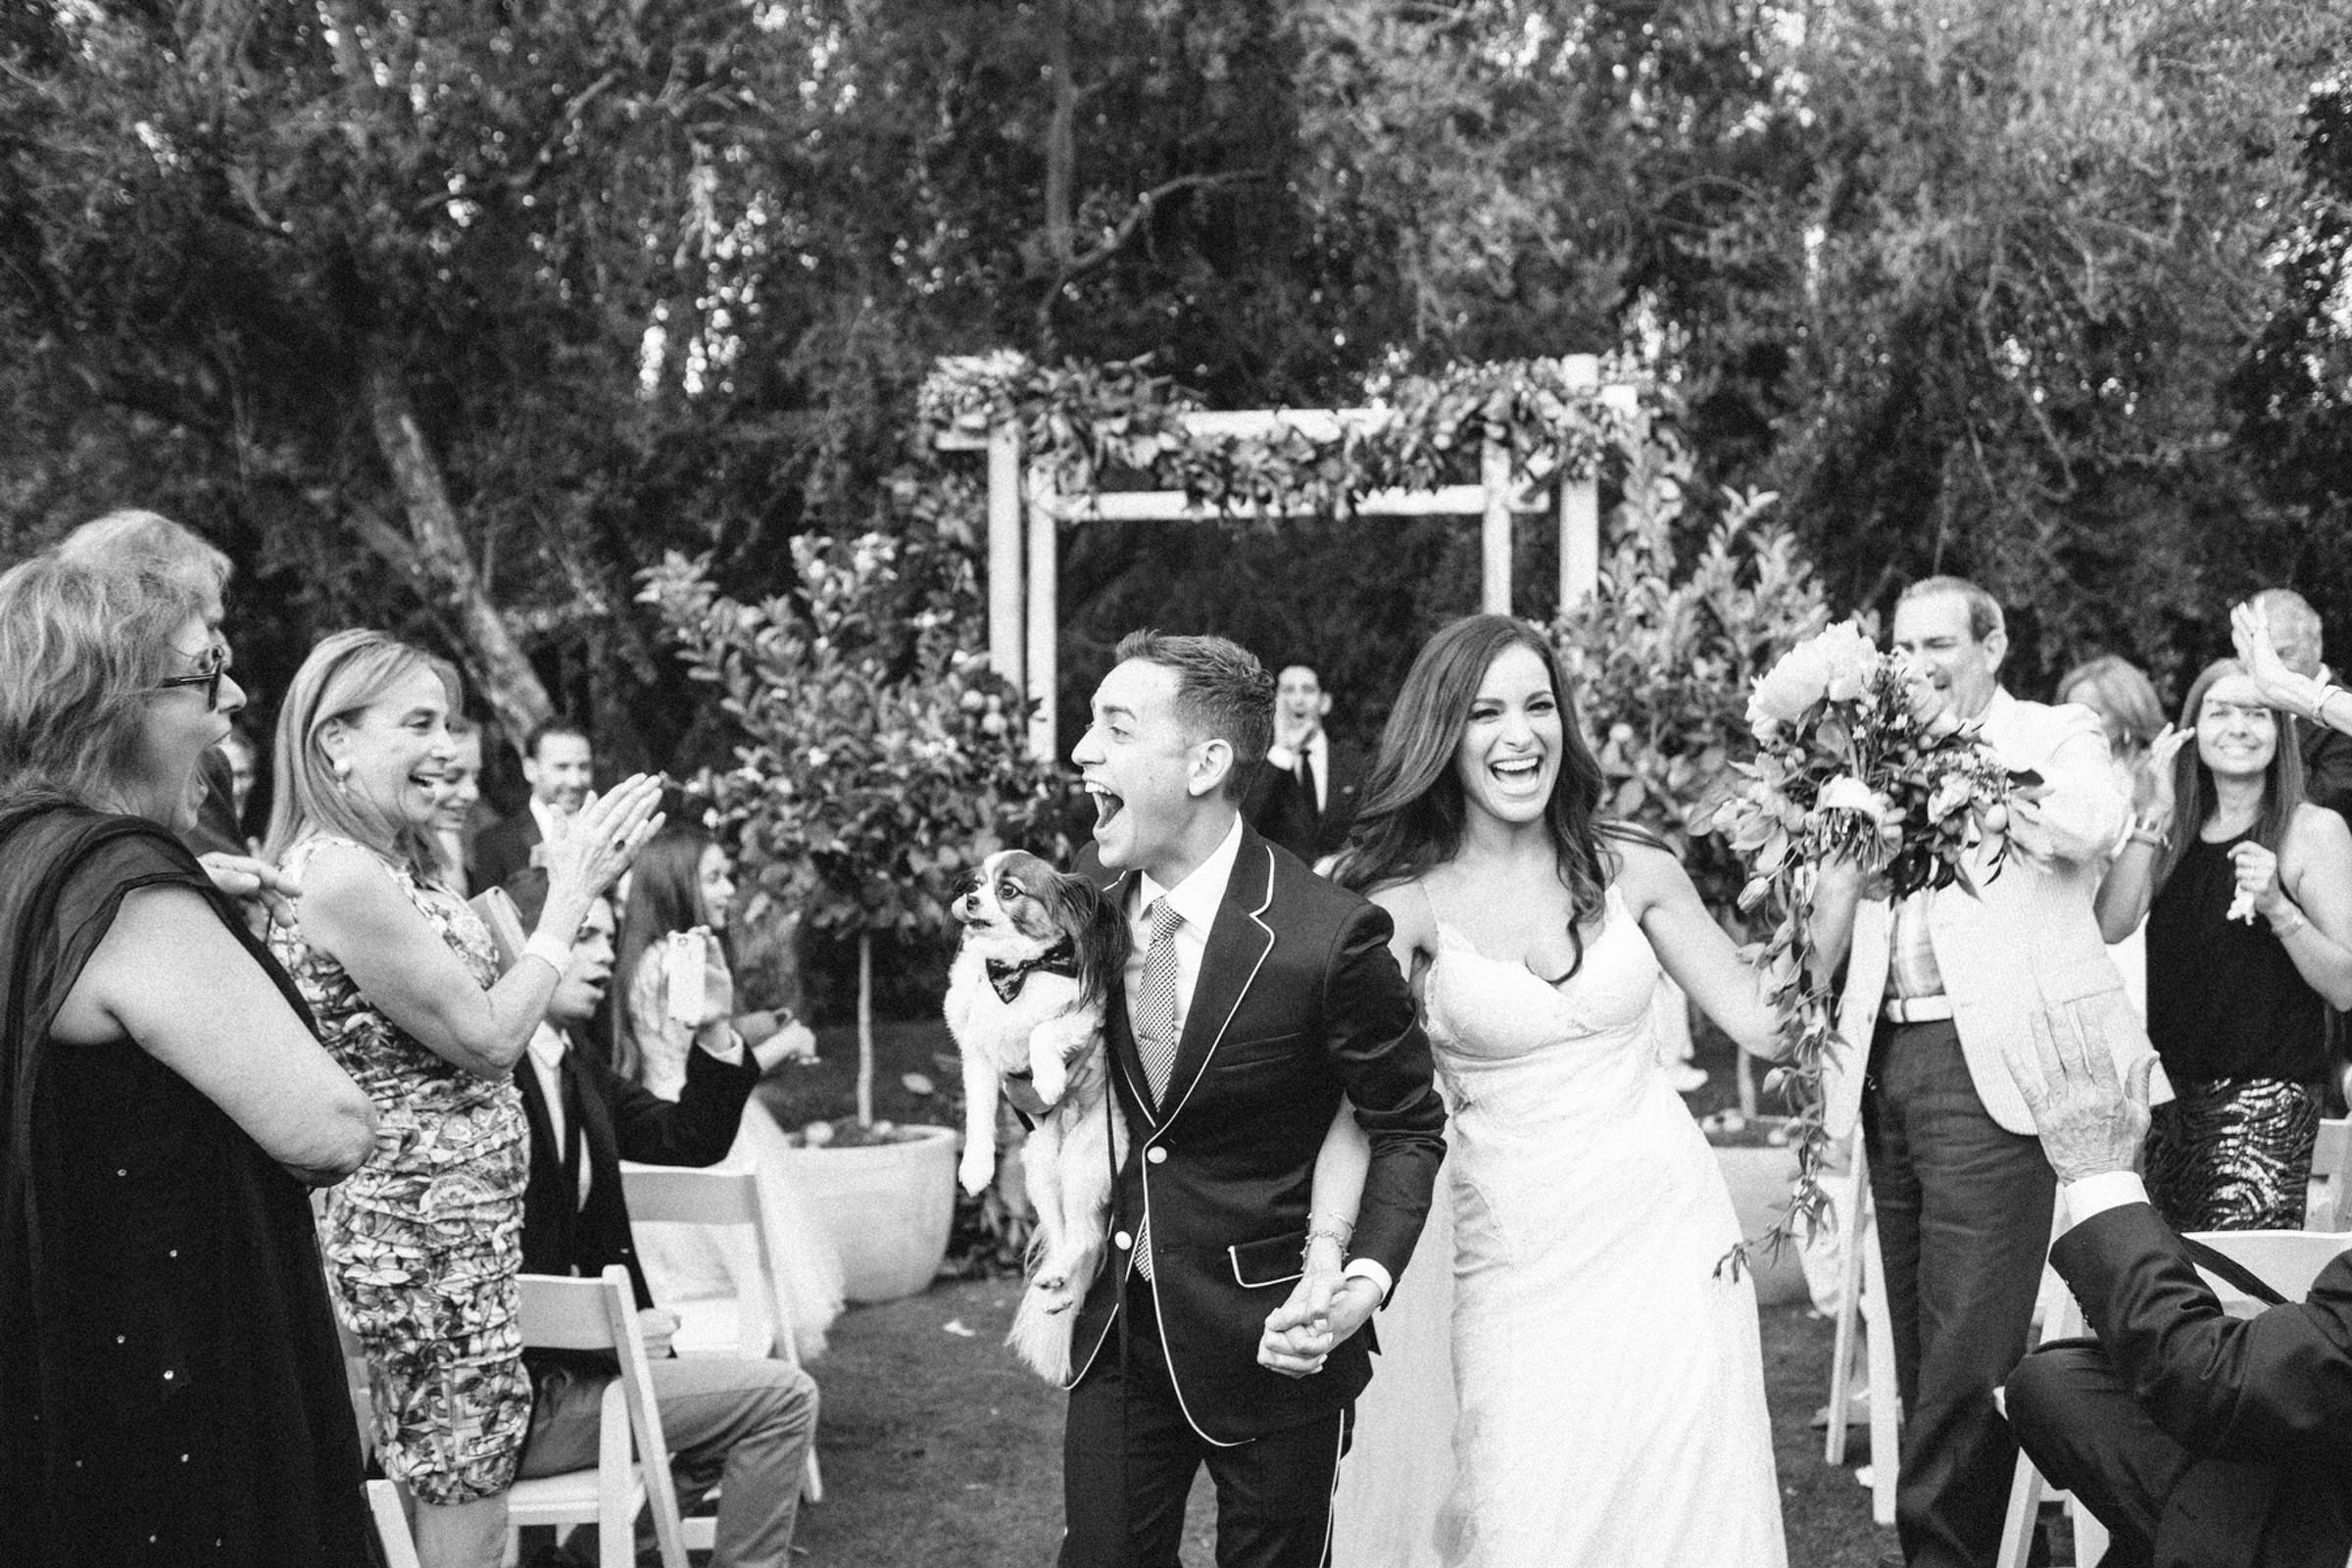 Happy couple leaves ceremony with puppy - photo by Corbin Gurkin